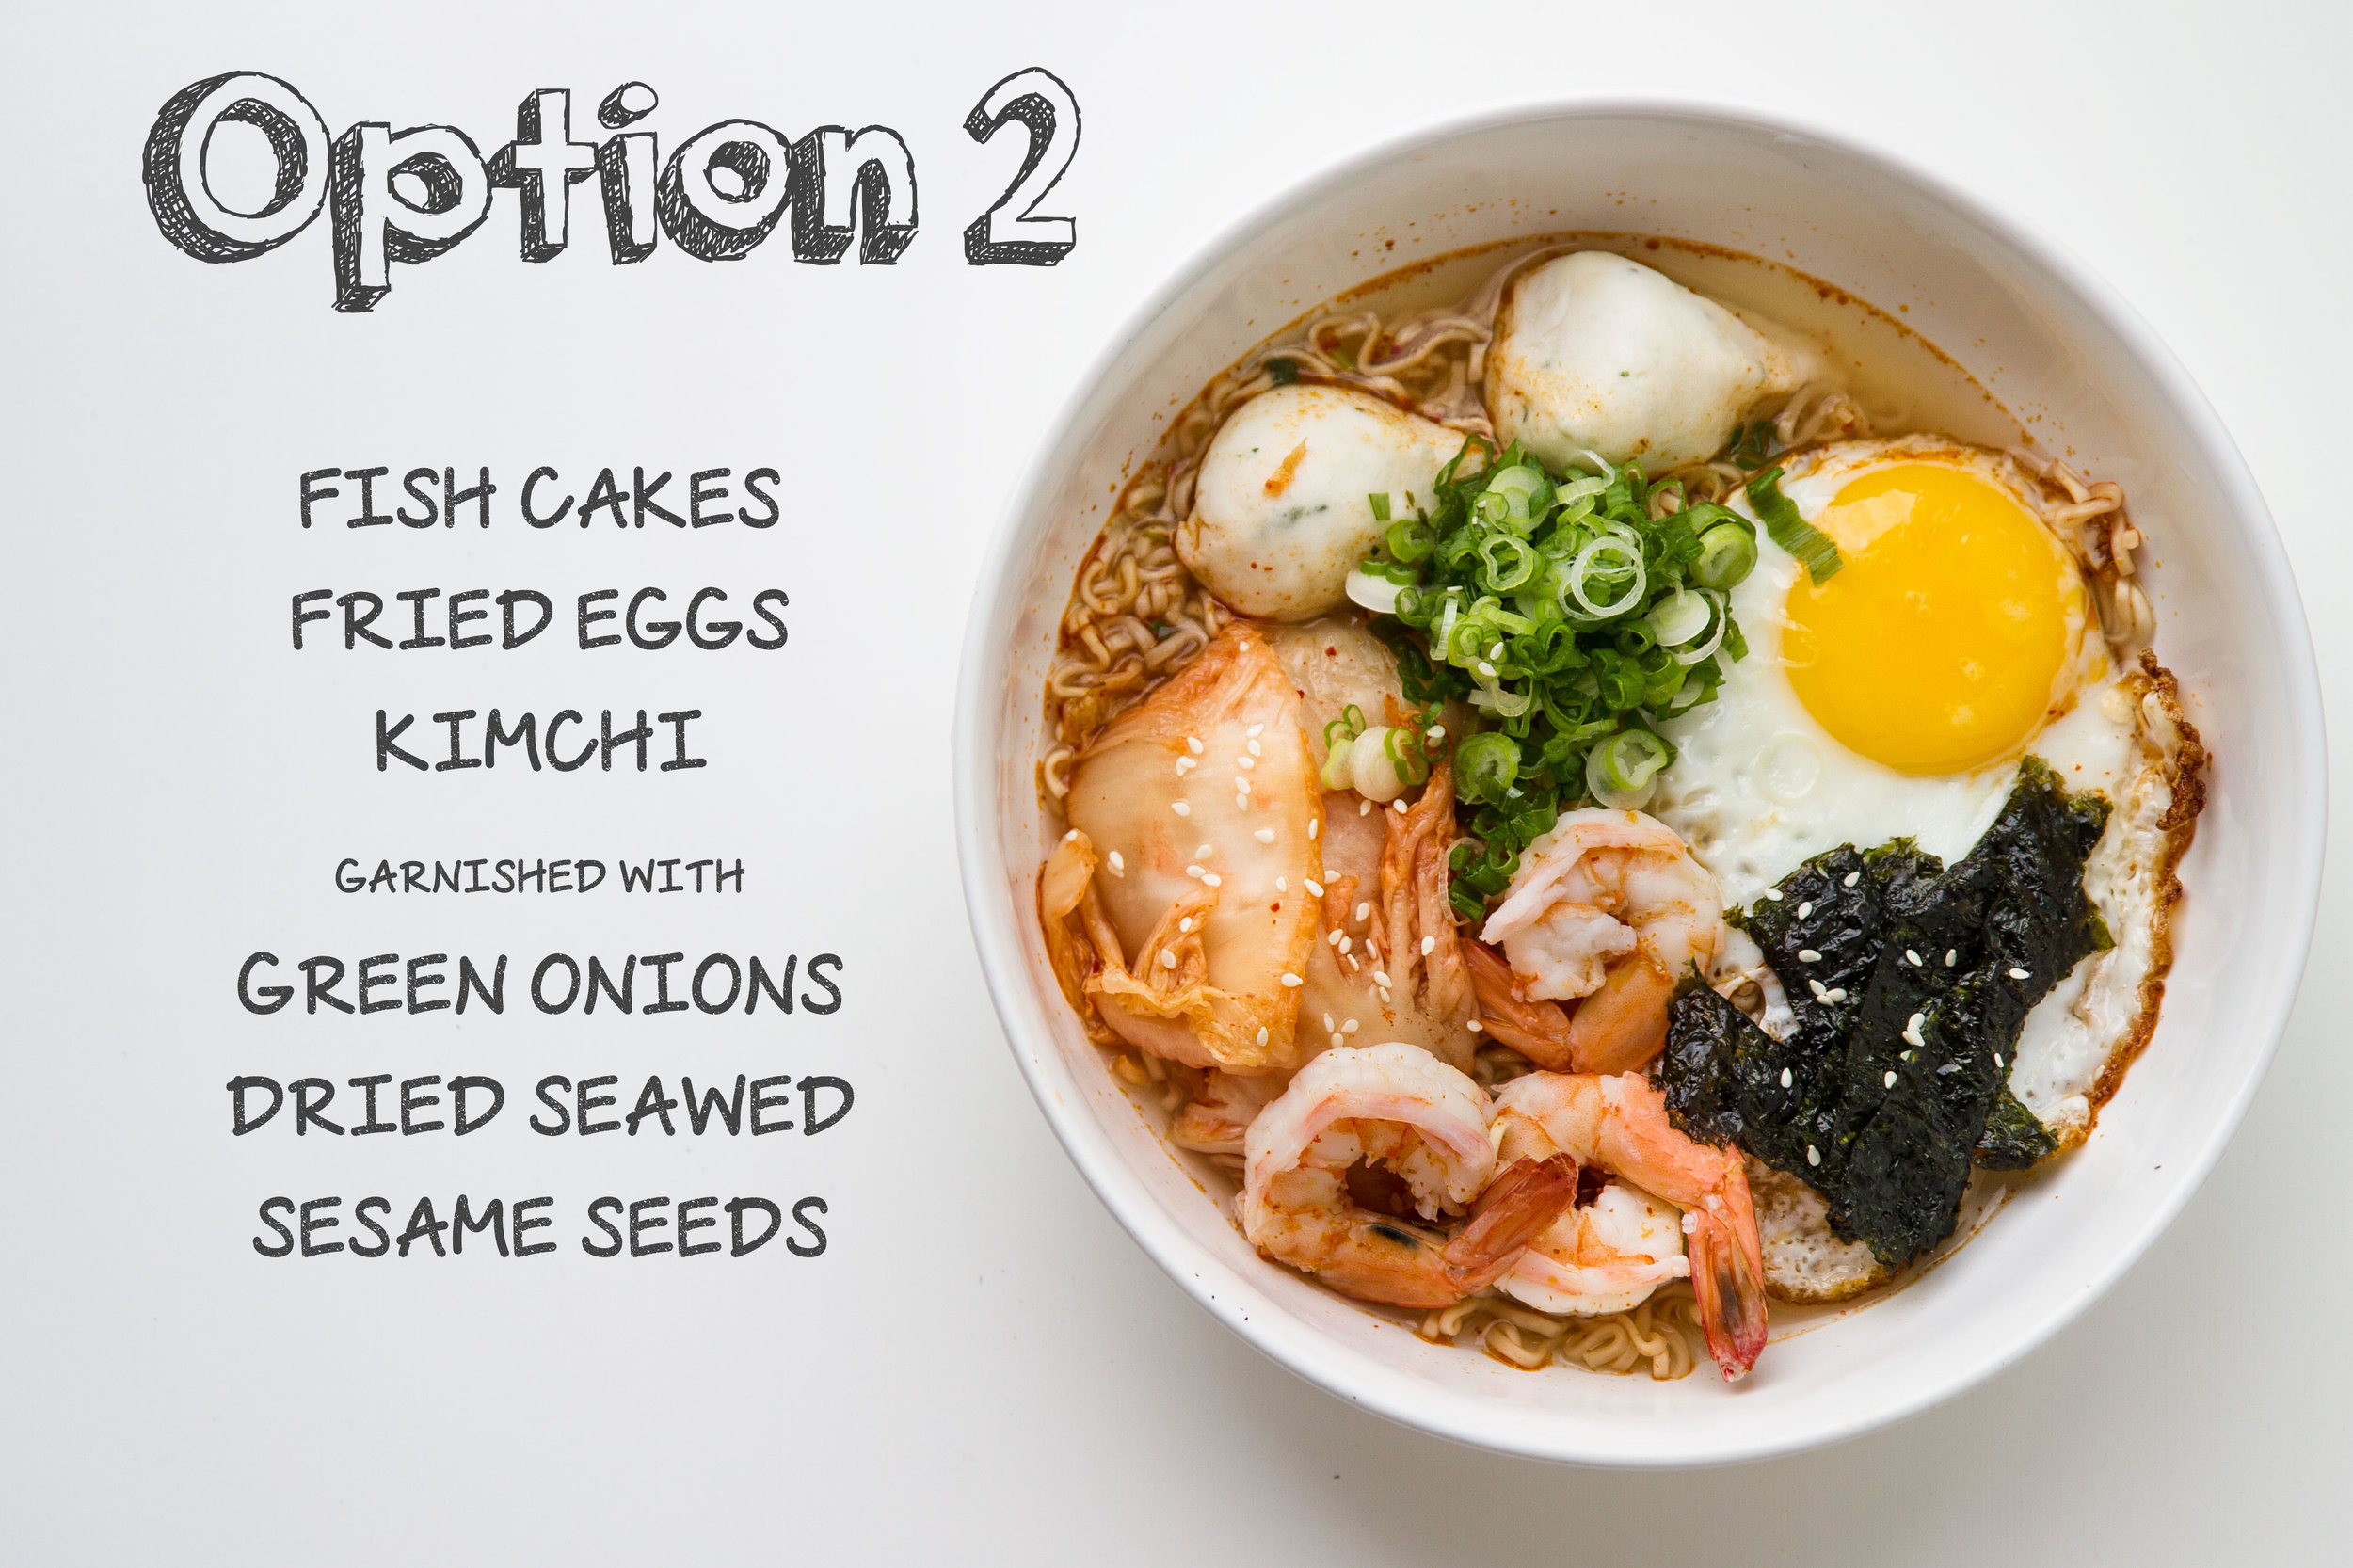 Instant Noodles with Fish Cakes, Shrimp, Kimchi, and Fried Egg